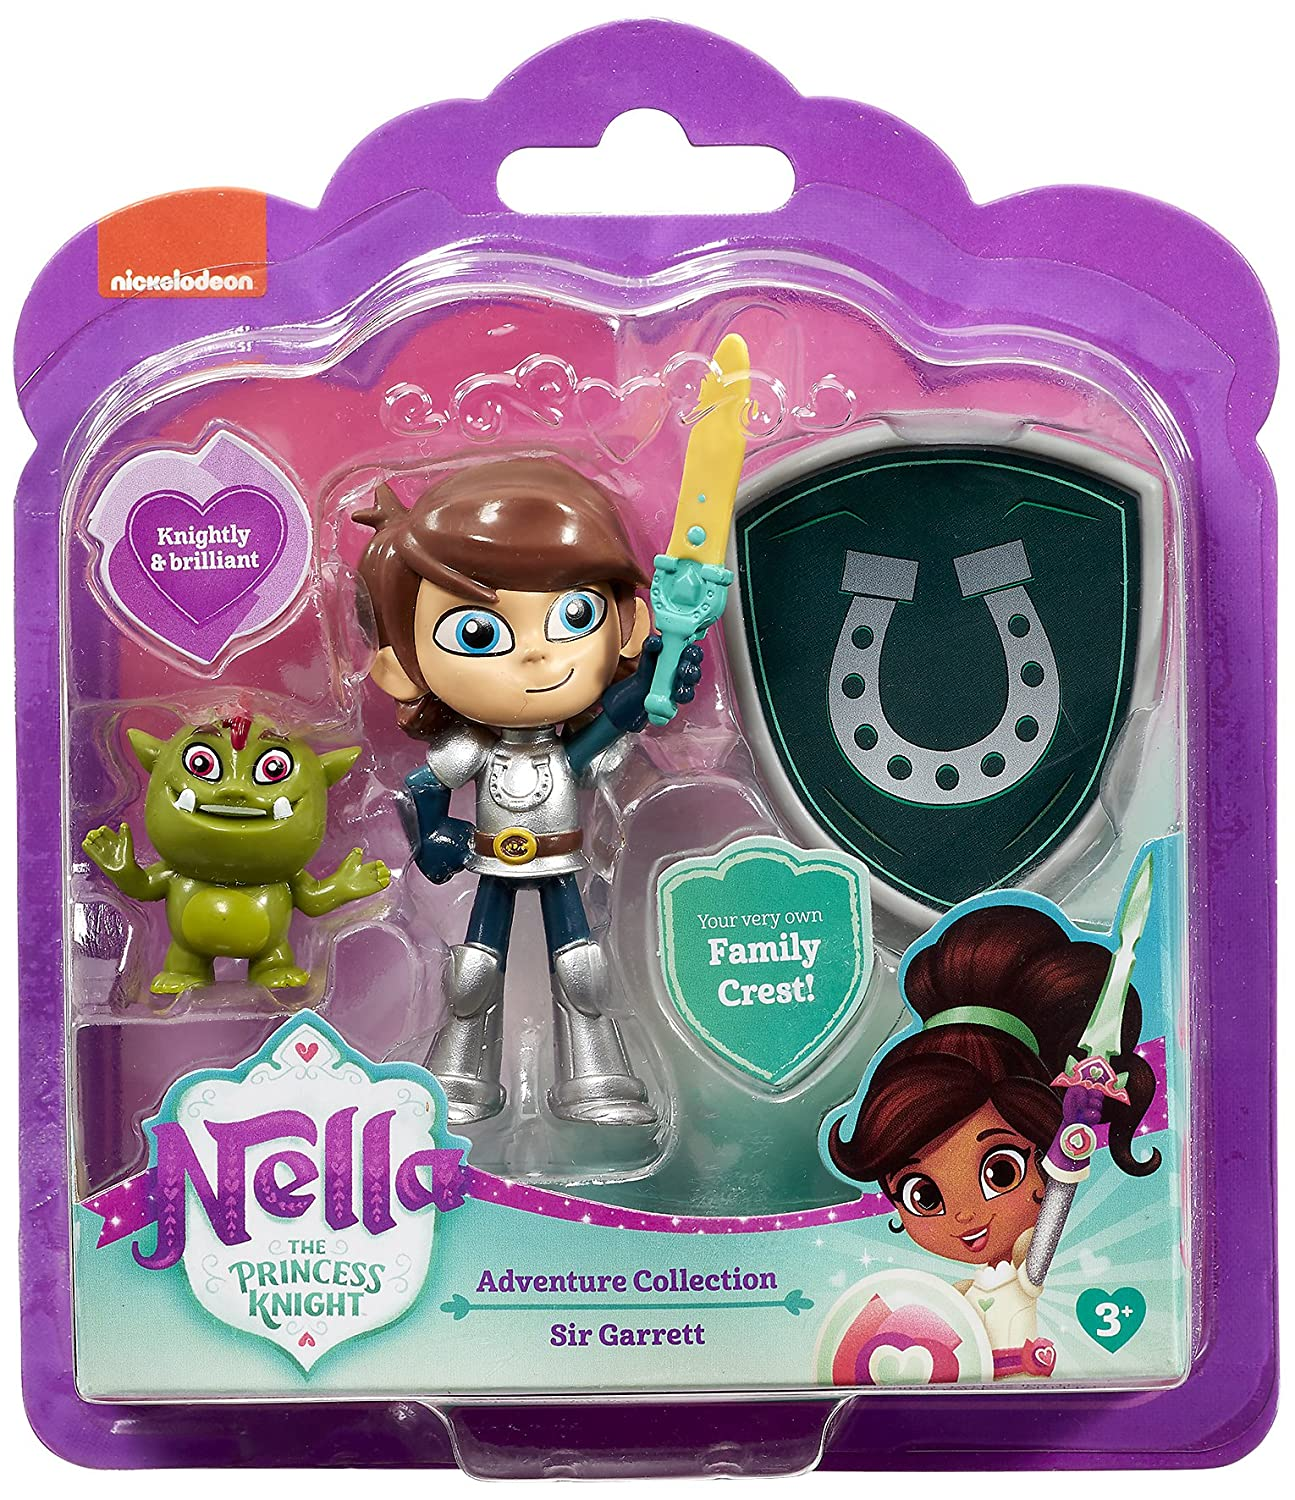 Nella the Princess Knight 11274 Garrett Adventure Collection, Multi-Colour Vivid Toy Group